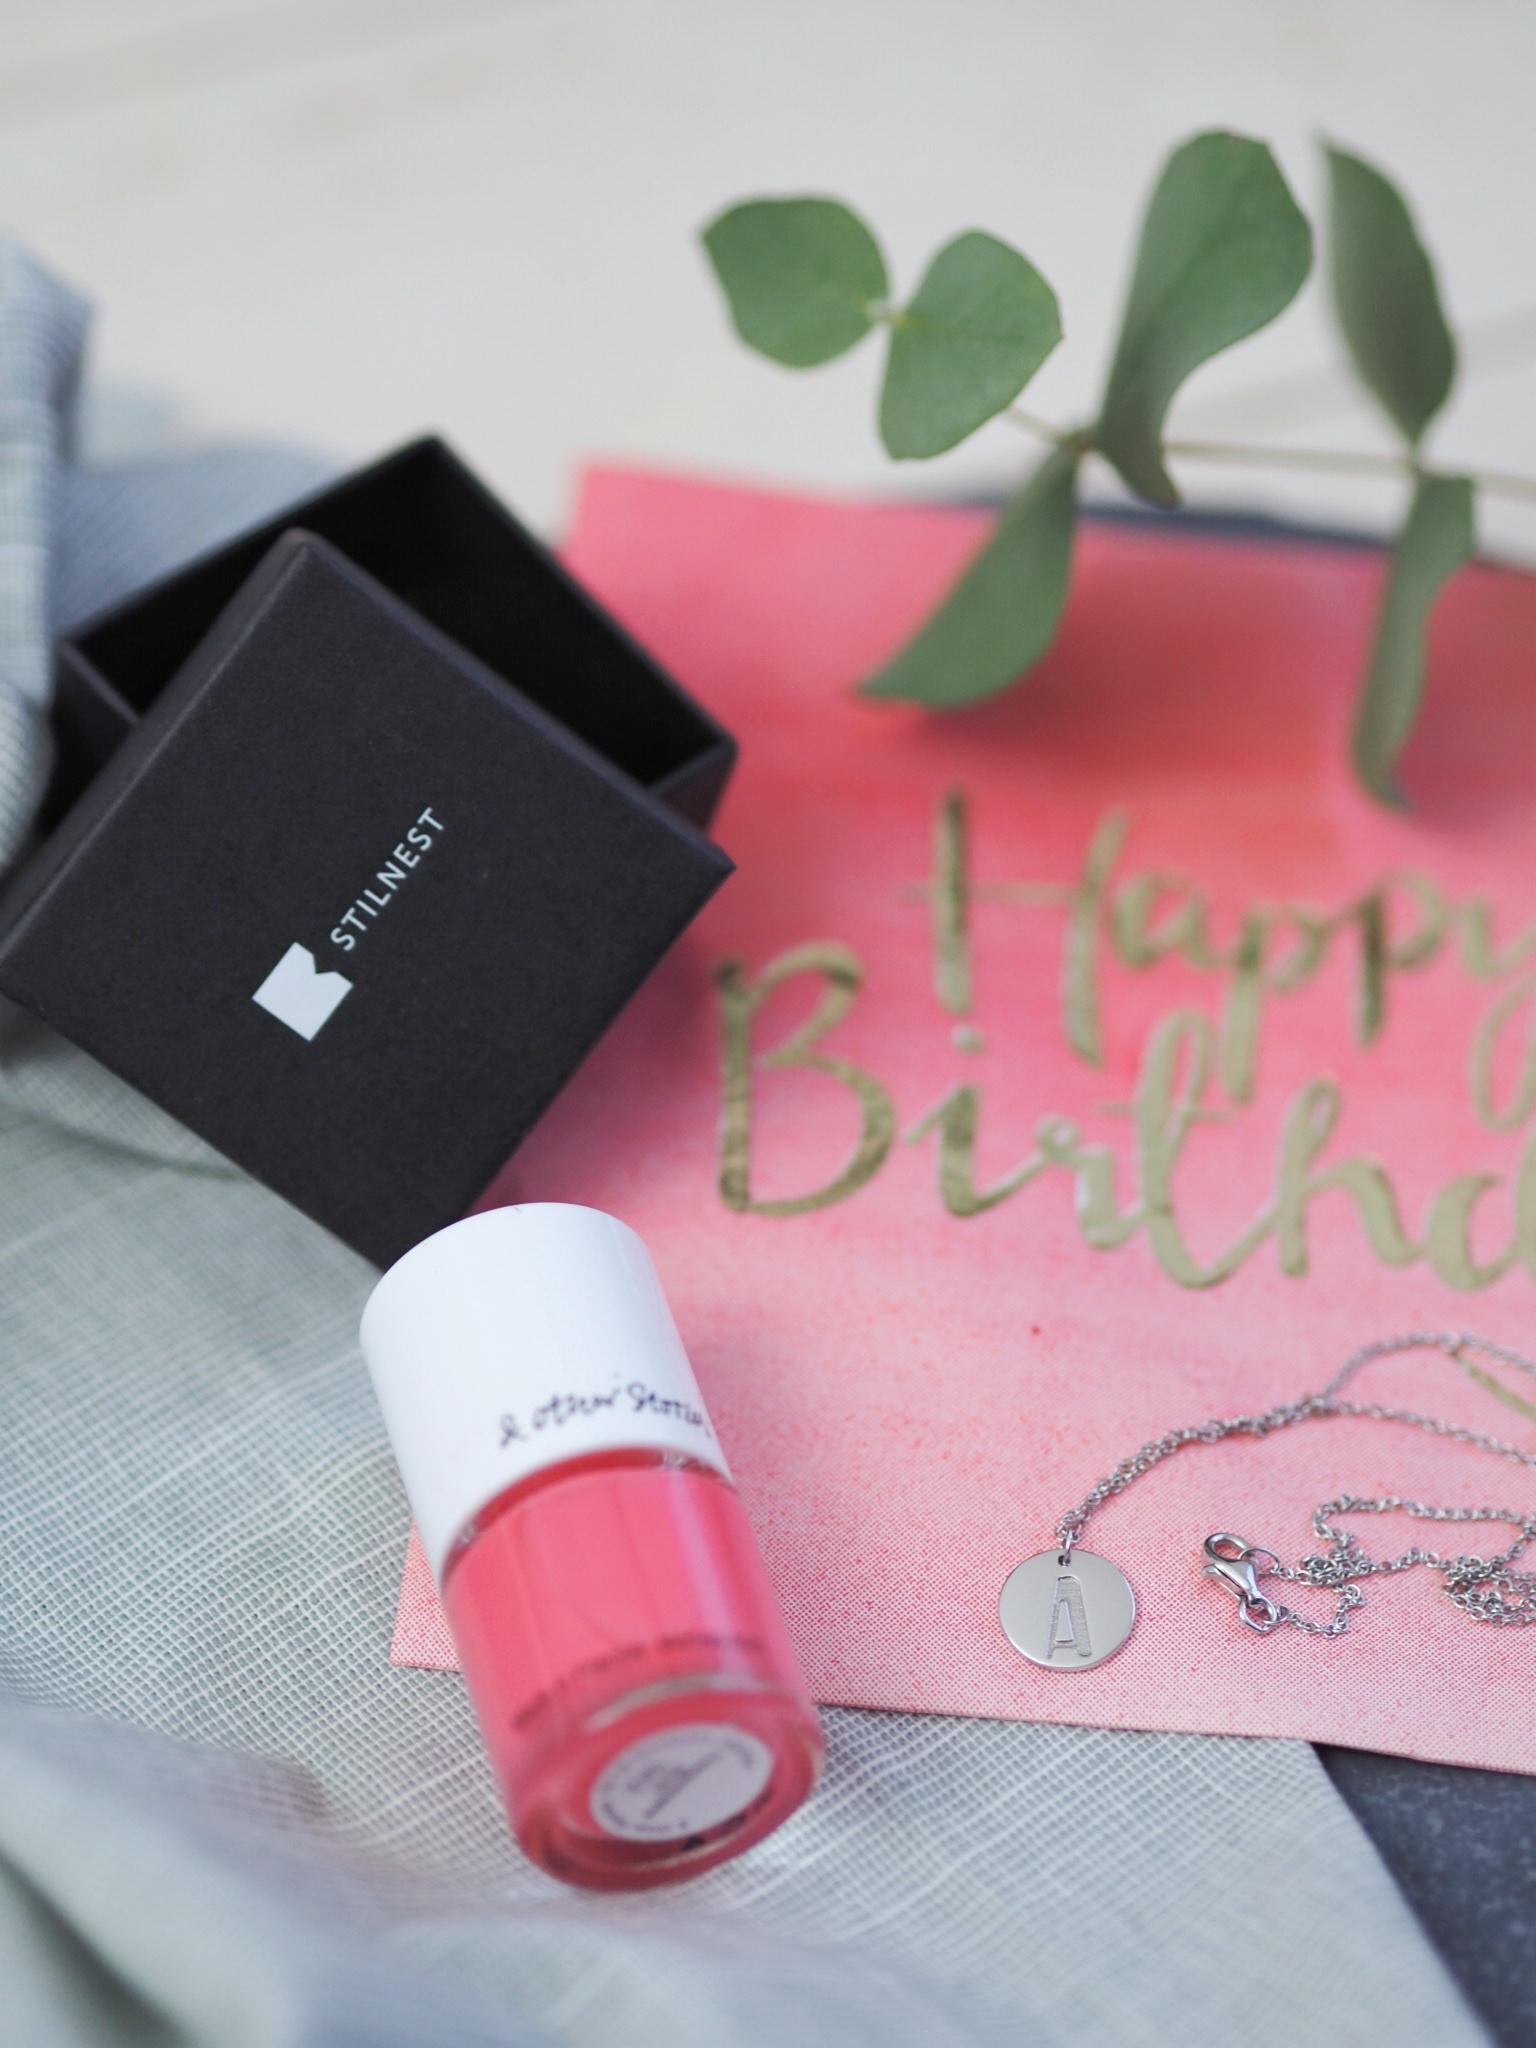 Flatlay stilnest happy birthday